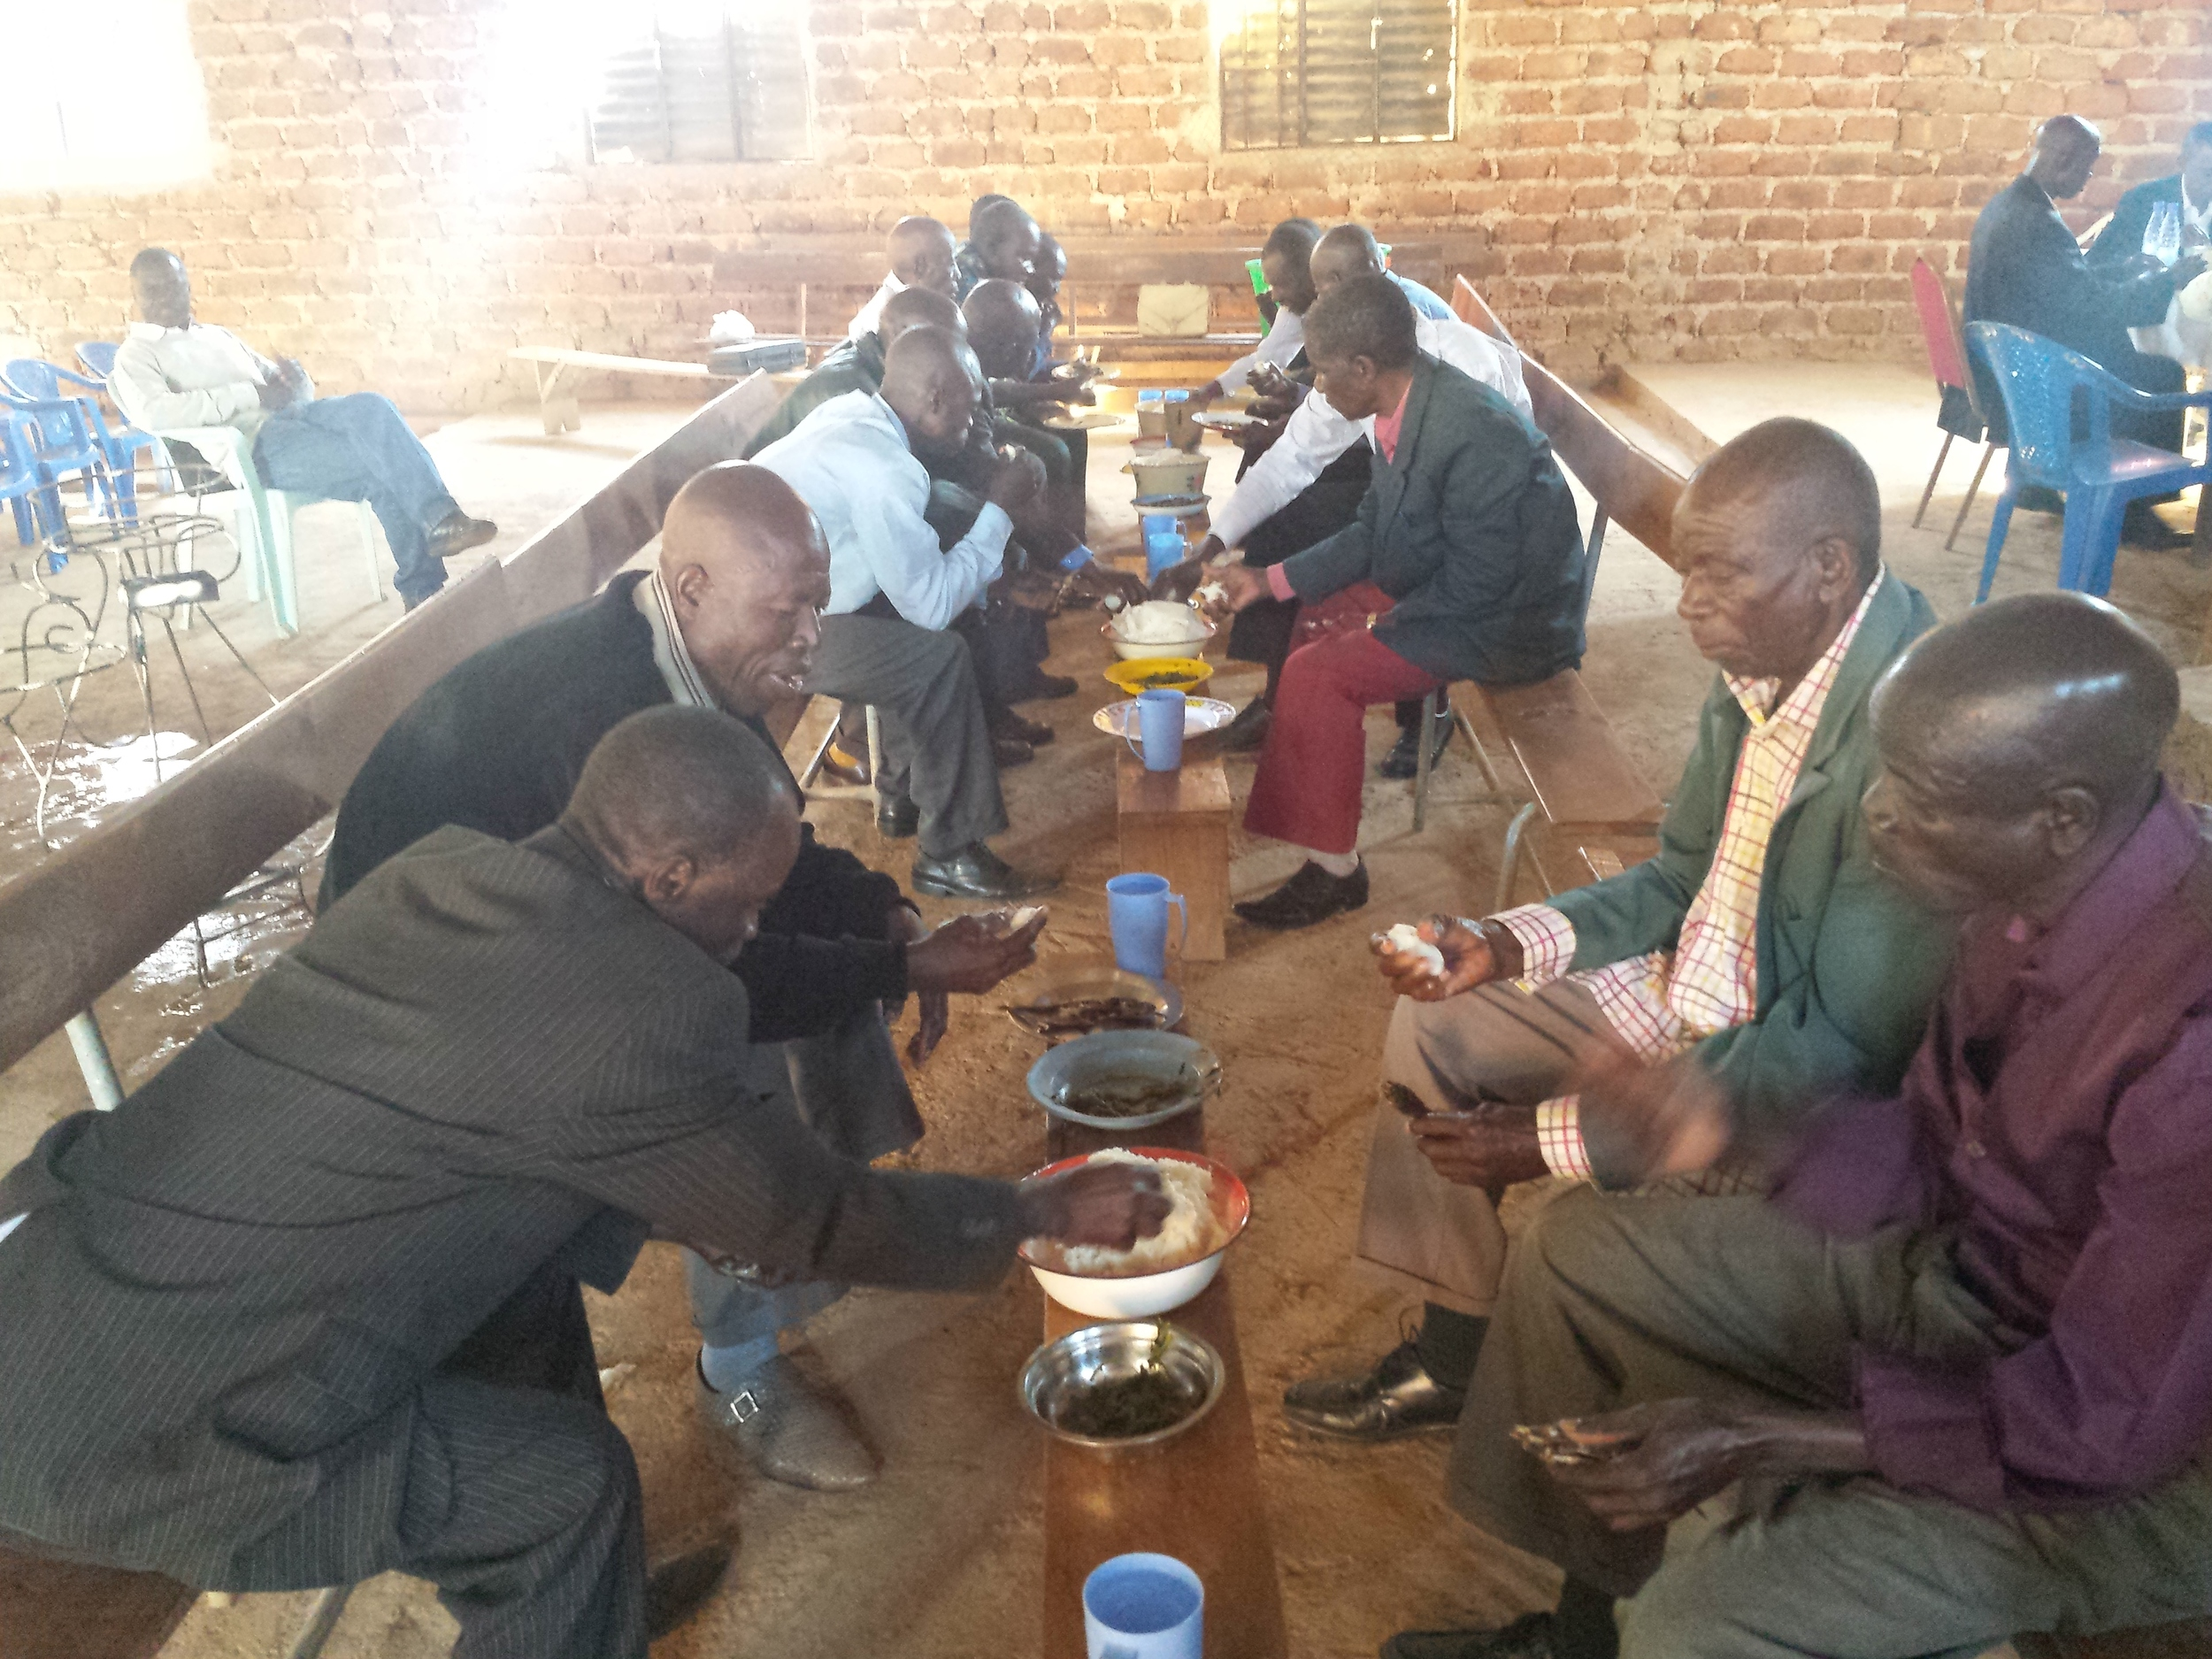 Lunch with the saints after the gospel meeting